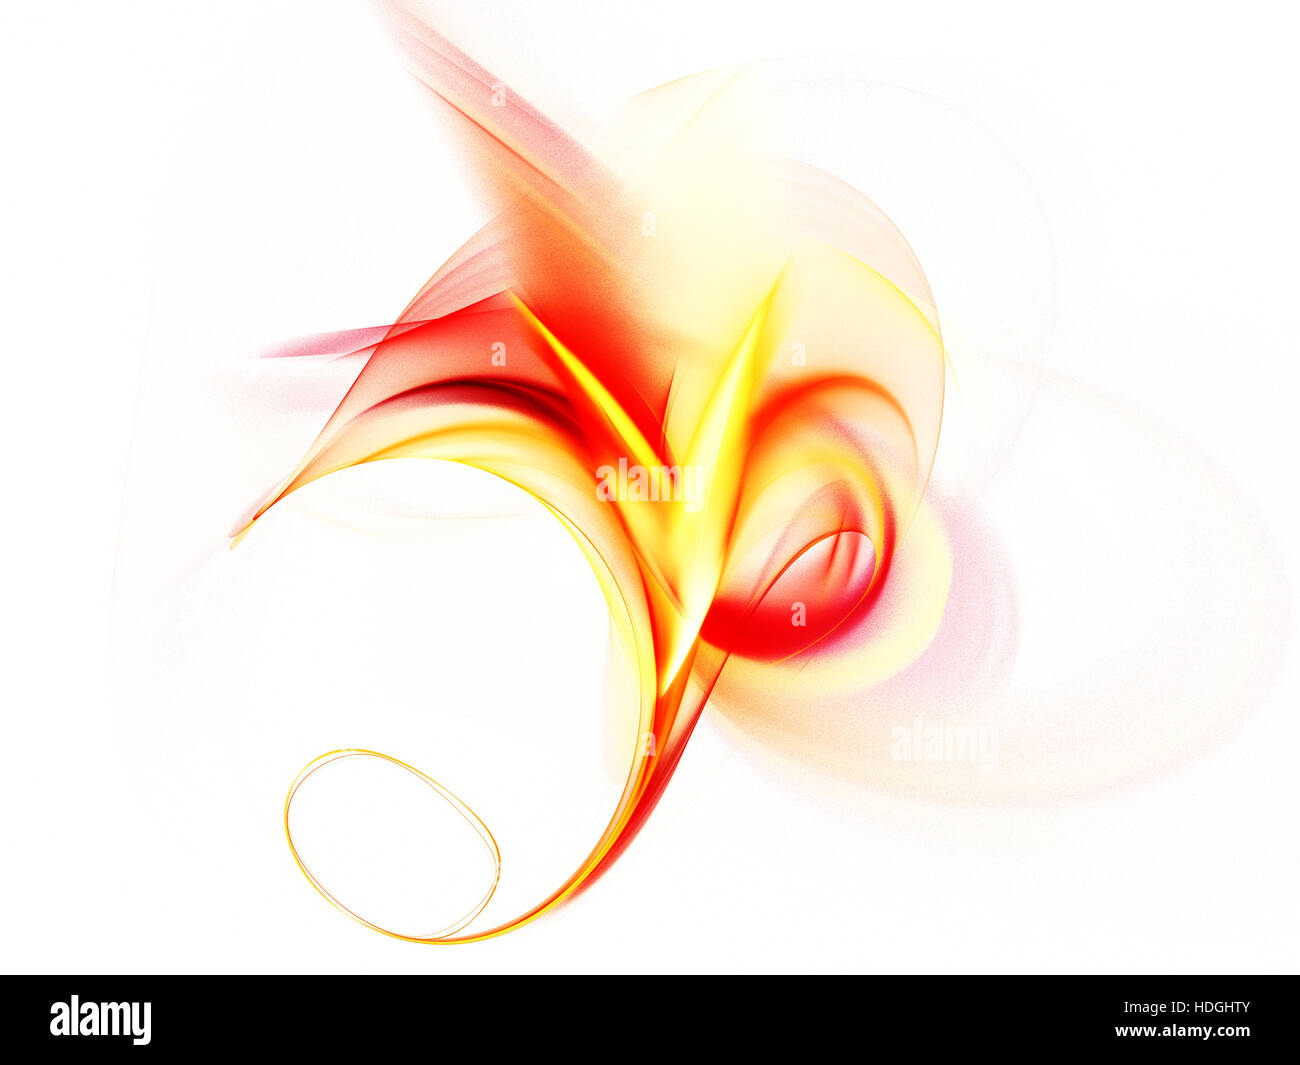 Colour Line Art Design : Abstract colour art backdrop wallpaper background stock photo